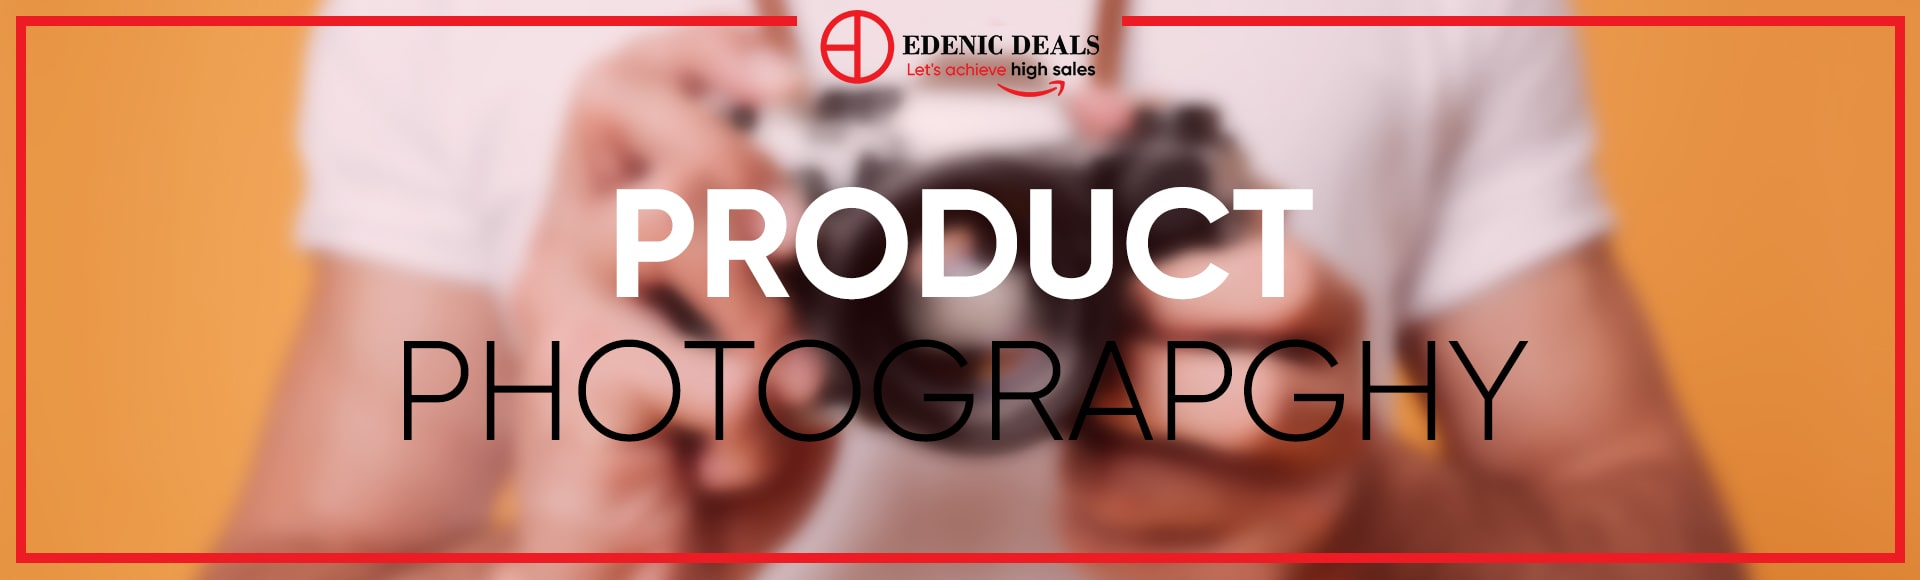 Edenic Deals Product Photgraphy